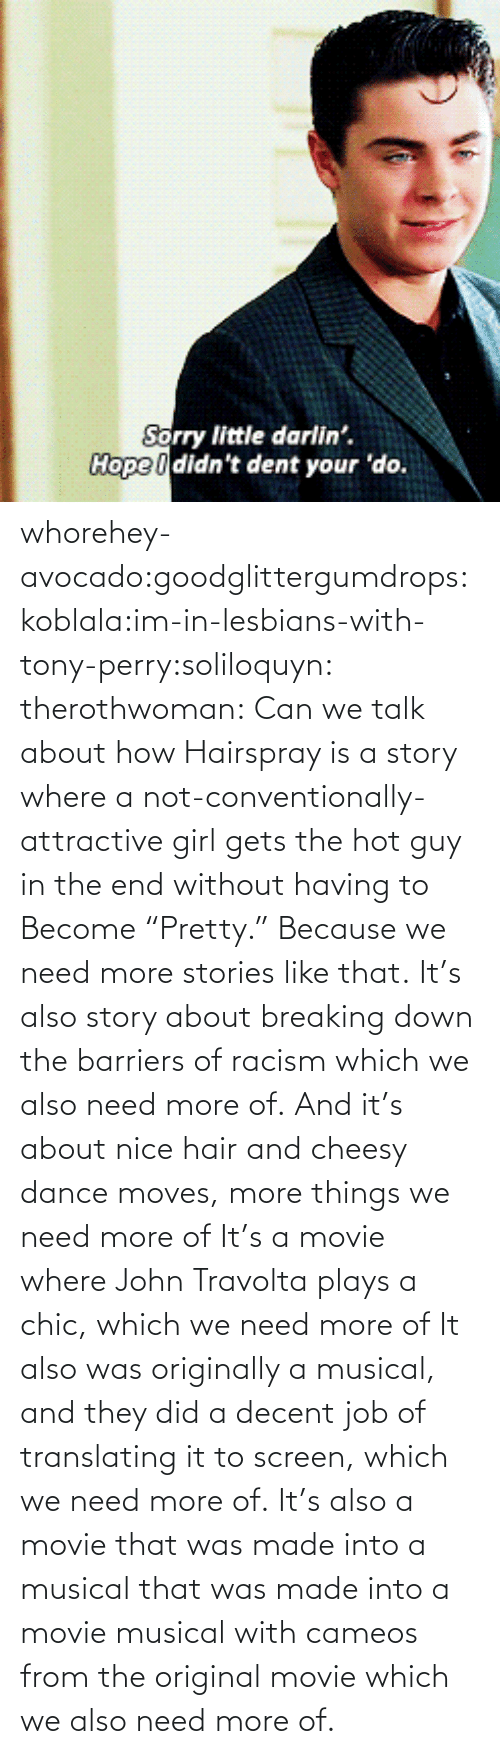 "Girl Gets: Sorry little darlin'.  Hope I didn't dent your 'do. whorehey-avocado:goodglittergumdrops:koblala:im-in-lesbians-with-tony-perry:soliloquyn:  therothwoman:  Can we talk about how Hairspray is a story where a not-conventionally-attractive girl gets the hot guy in the end without having to Become ""Pretty."" Because we need more stories like that.  It's also story about breaking down the barriers of racism which we also need more of.  And it's about nice hair and cheesy dance moves, more things we need more of  It's a movie where John Travolta plays a chic, which we need more of  It also was originally a musical, and they did a decent job of translating it to screen, which we need more of.   It's also a movie that was made into a musical that was made into a movie musical with cameos from the original movie which we also need more of."